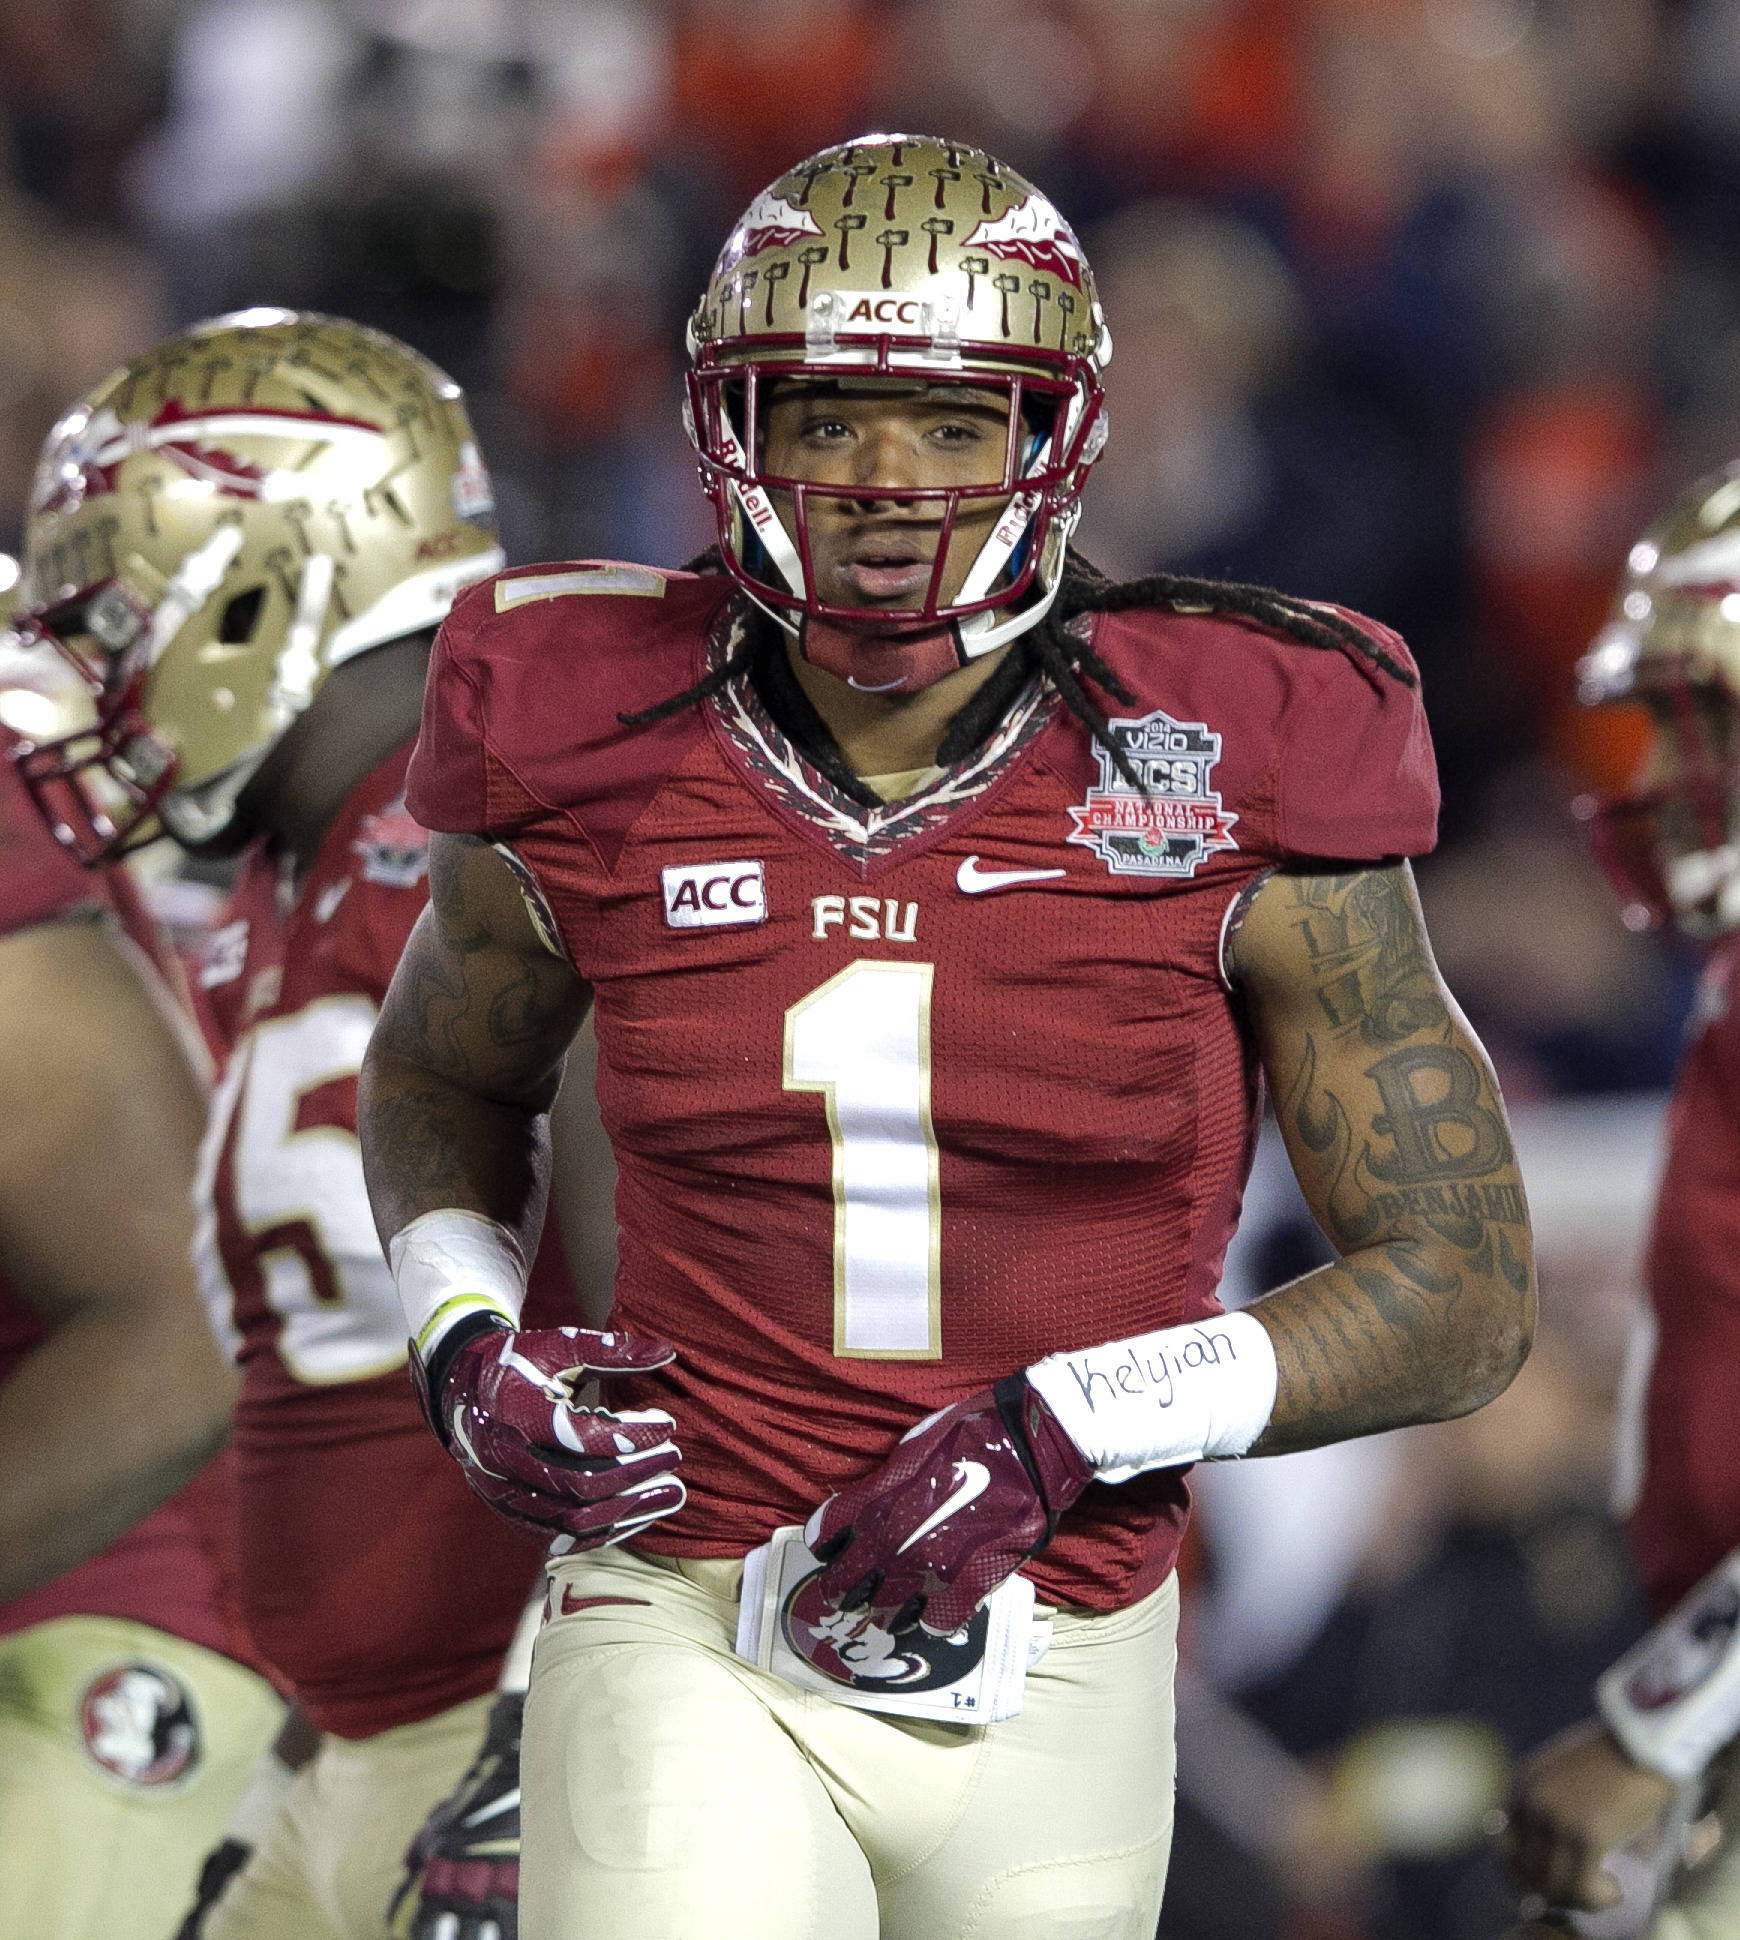 Kelvin Benjamin (1) heading to the line, BCS Championship, FSU vs Auburn, Rose Bowl, Pasadena, CA,  1-06-14,  (Photo by Steve Musco)